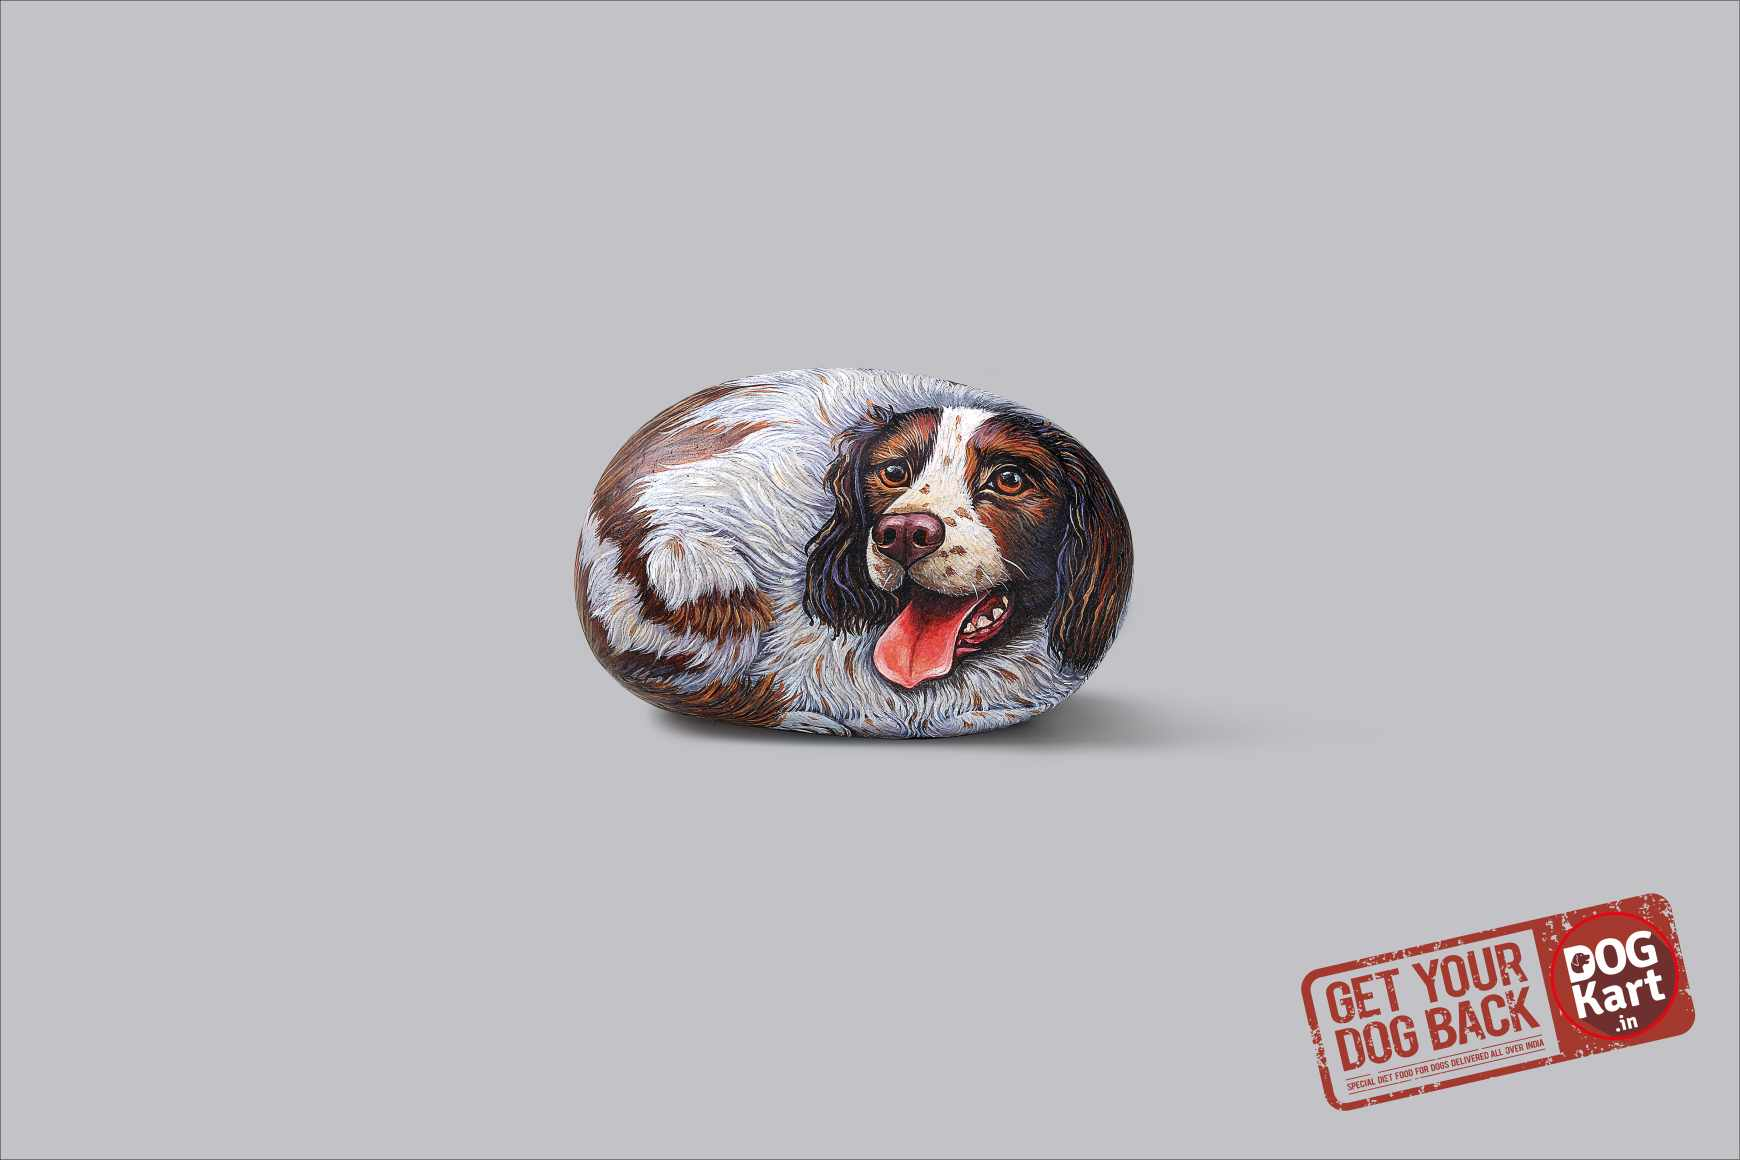 Dogkart Print Ad - Rock Heavy - Cocker Spaniel